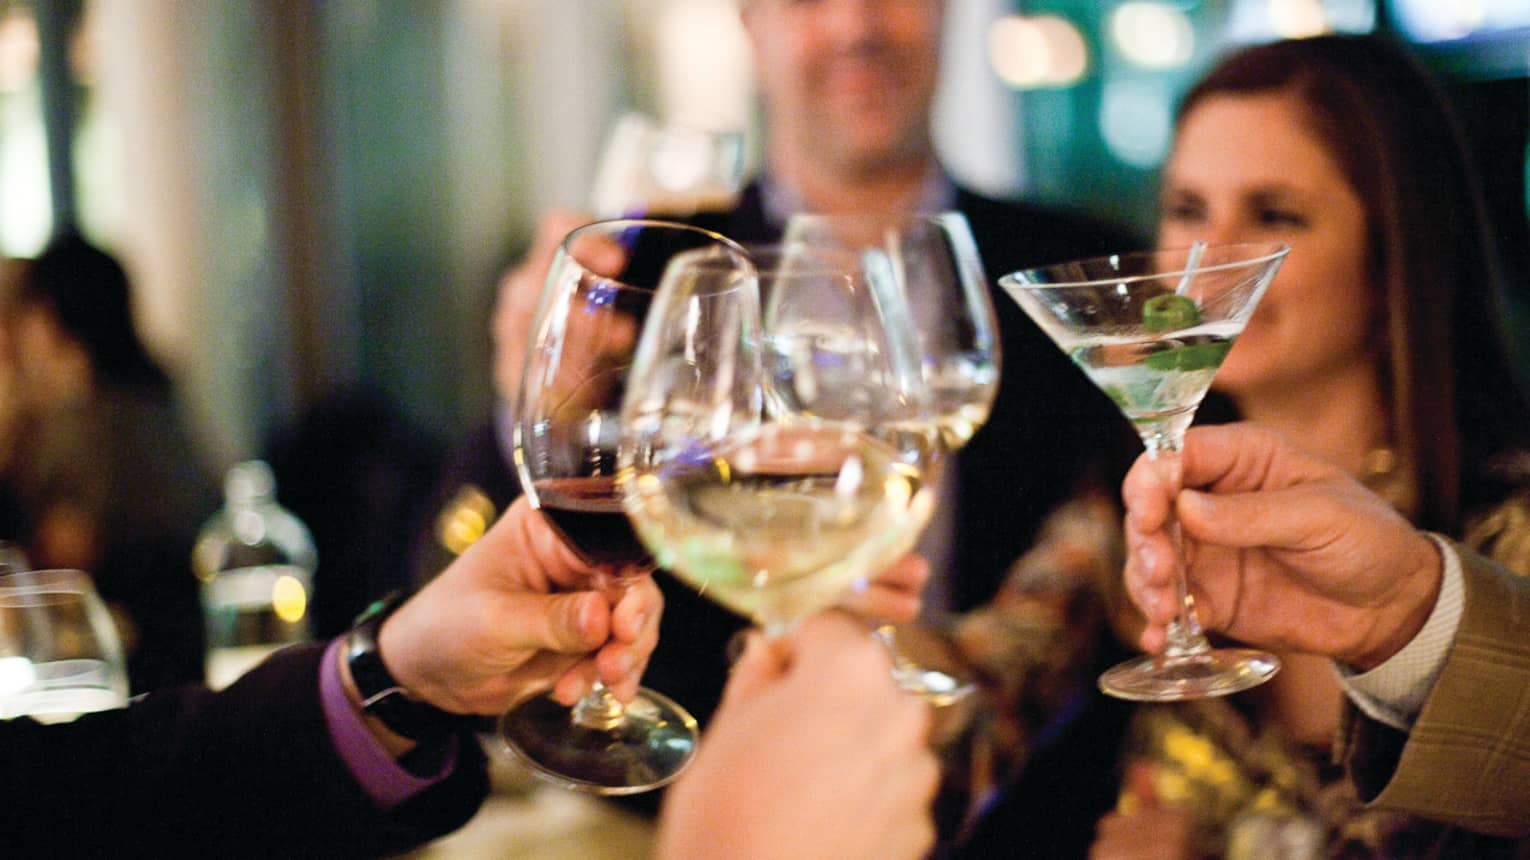 Group of friends toast with wine and martini glasses